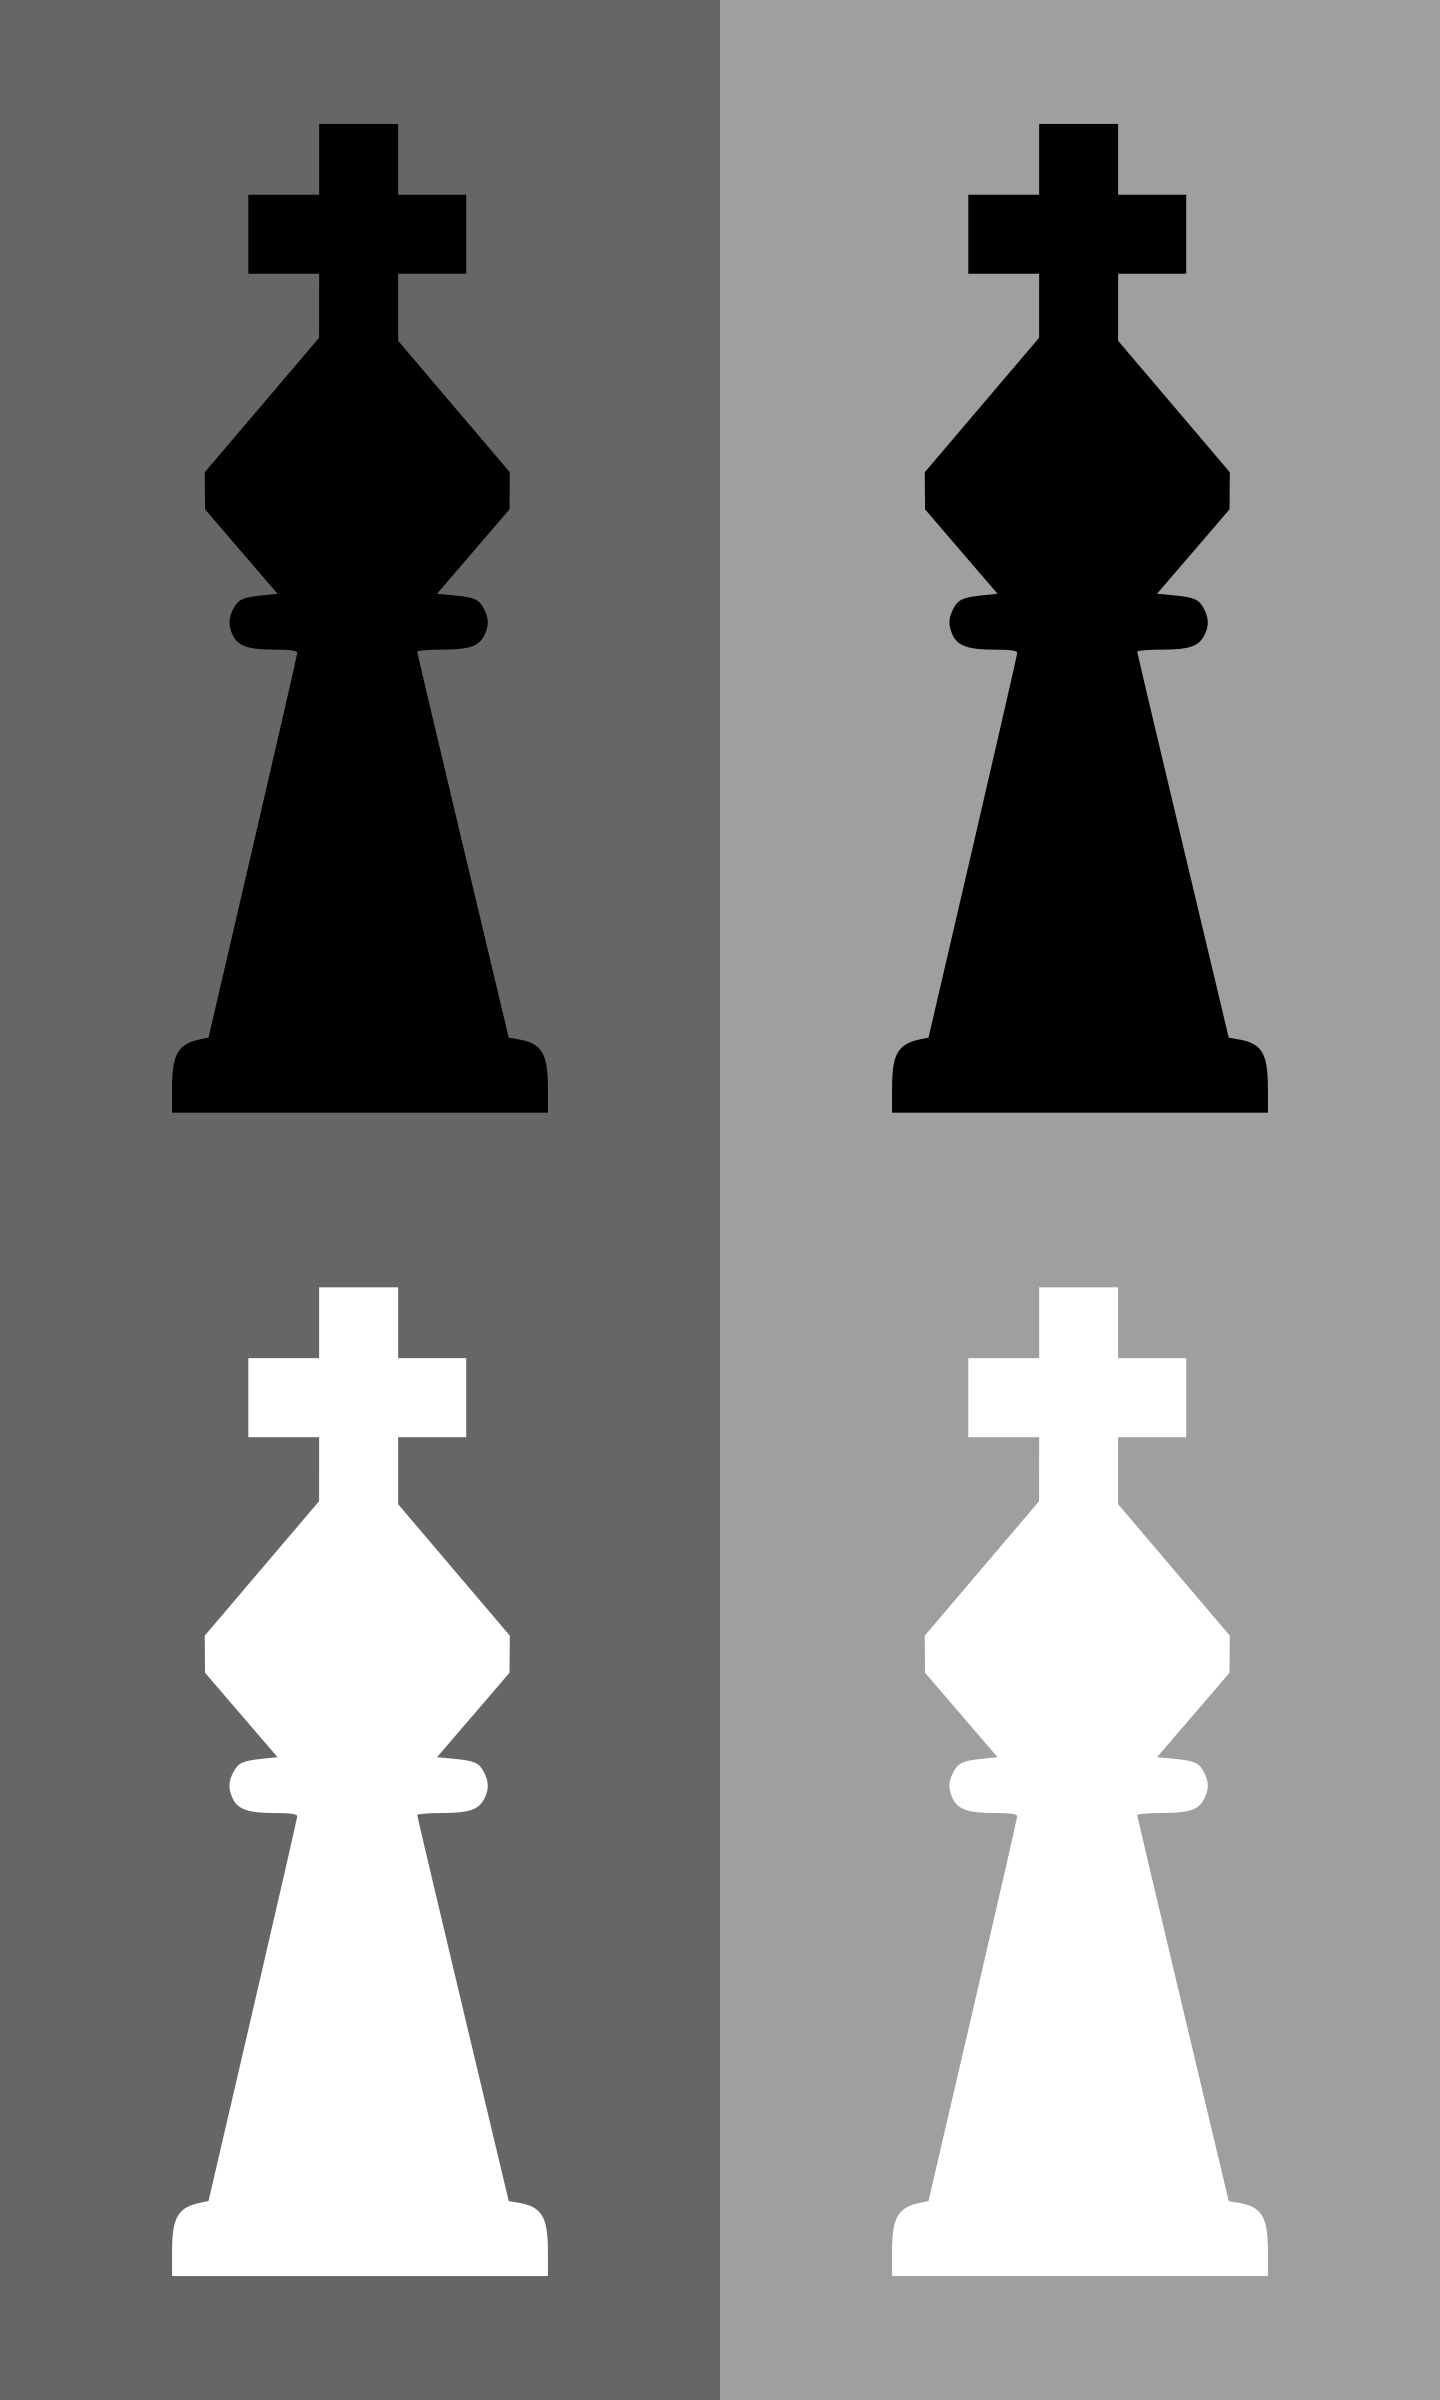 2D Chess set - King by portablejim